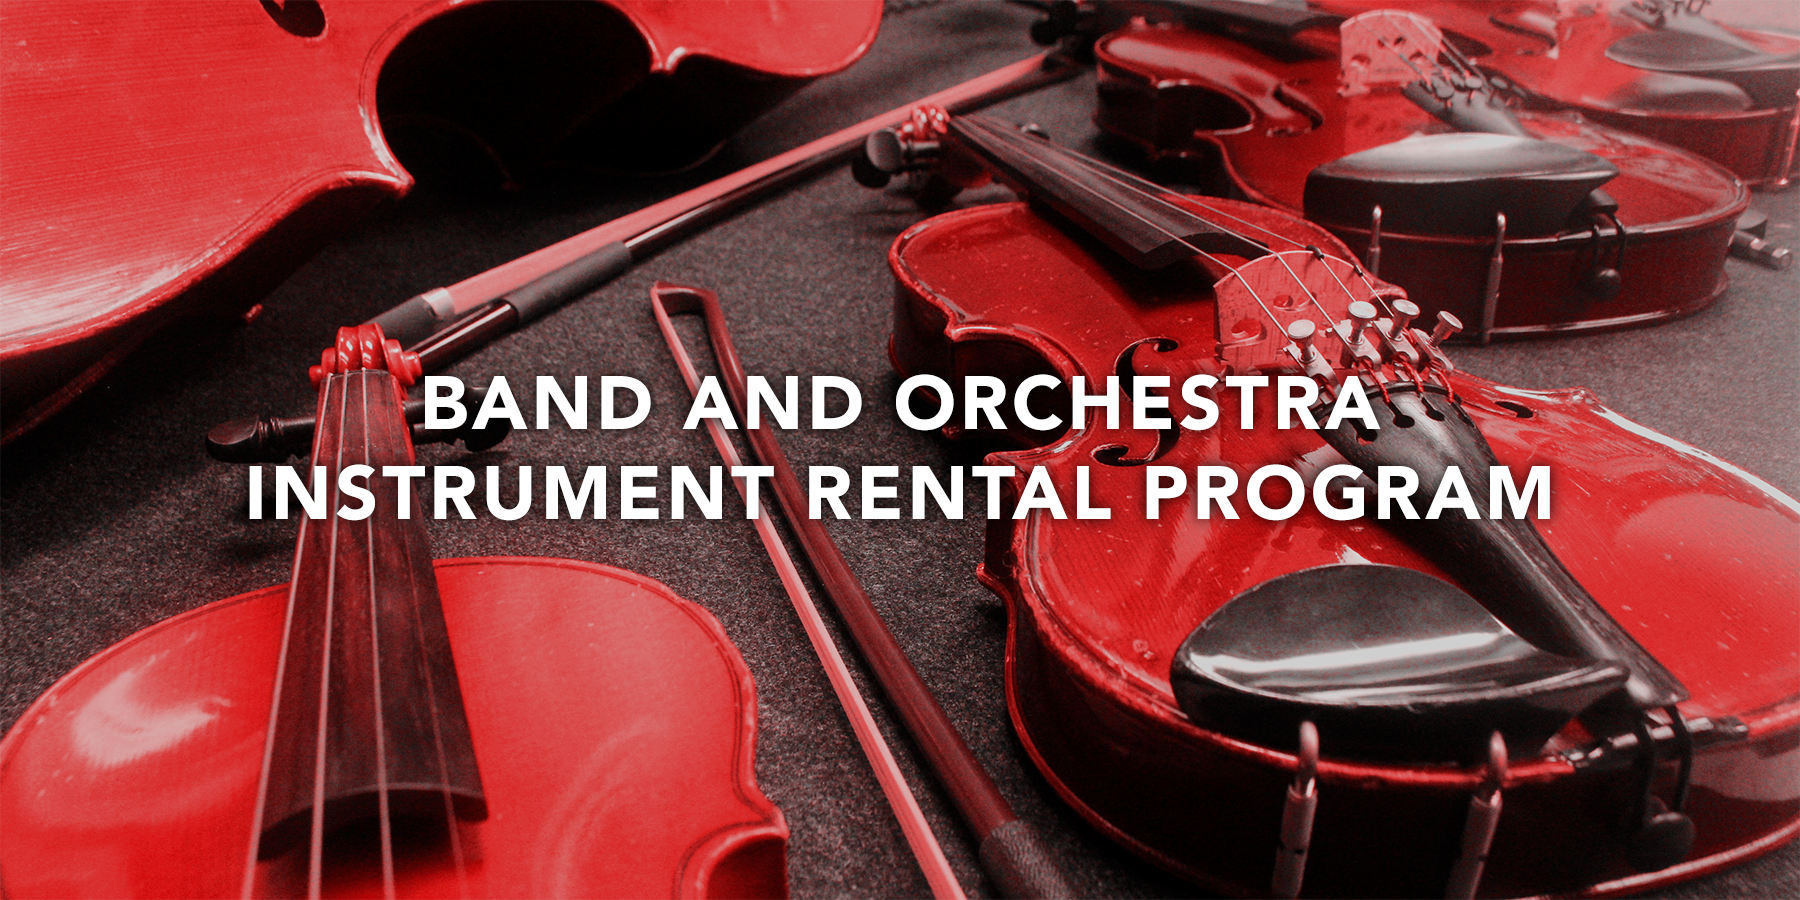 Band and Orchestra Instrument Rental Program